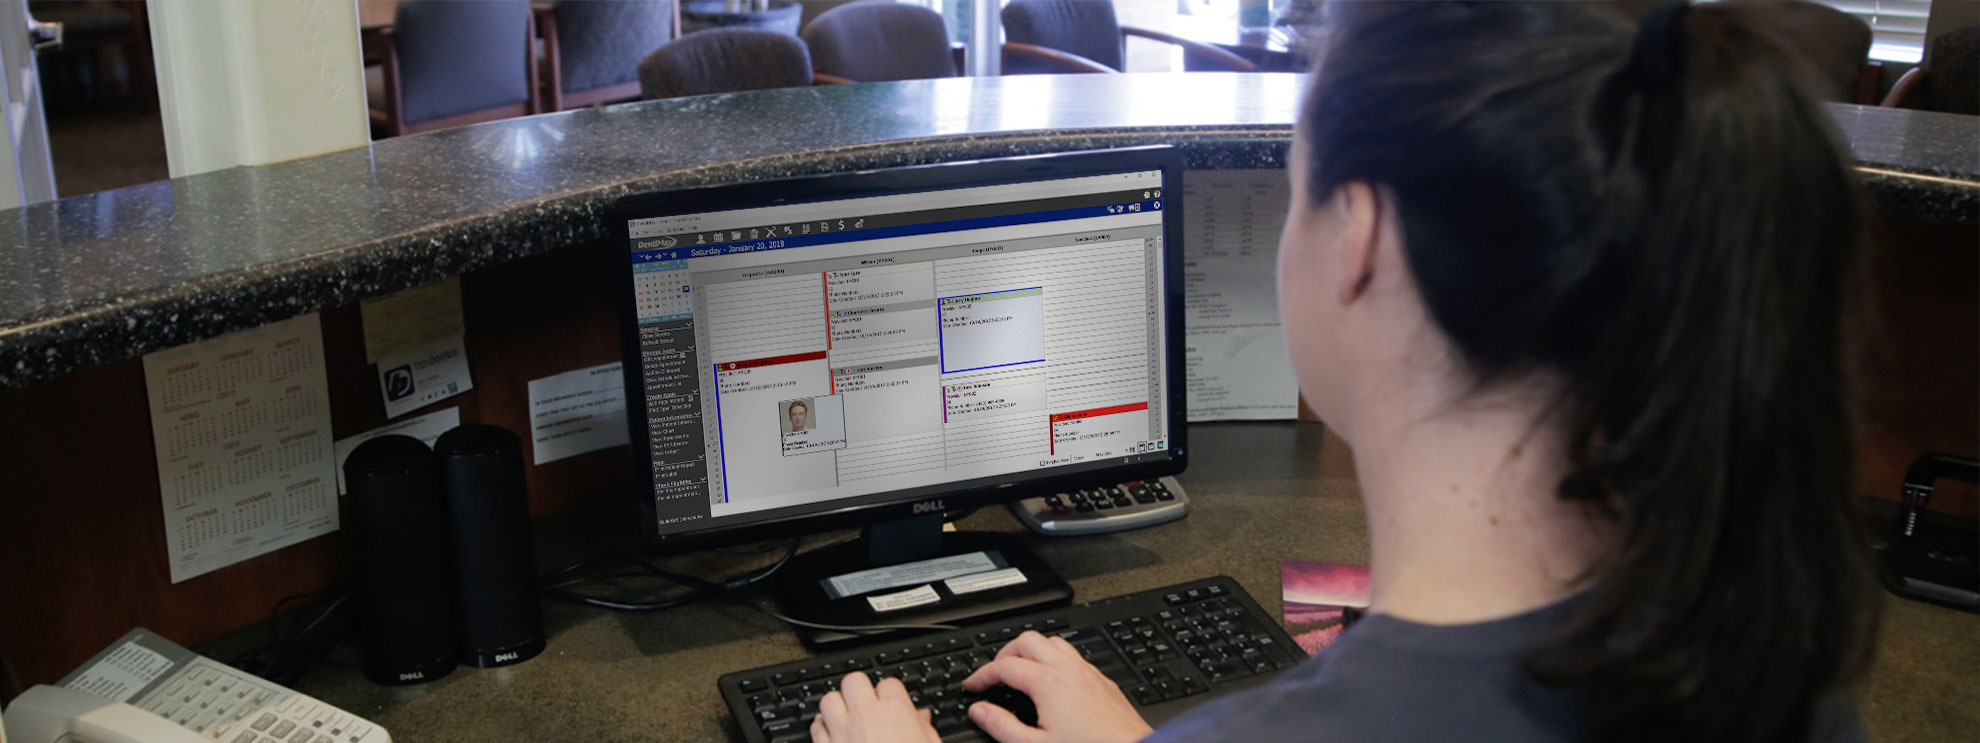 Image of Practice Using DentiMax Dental Software